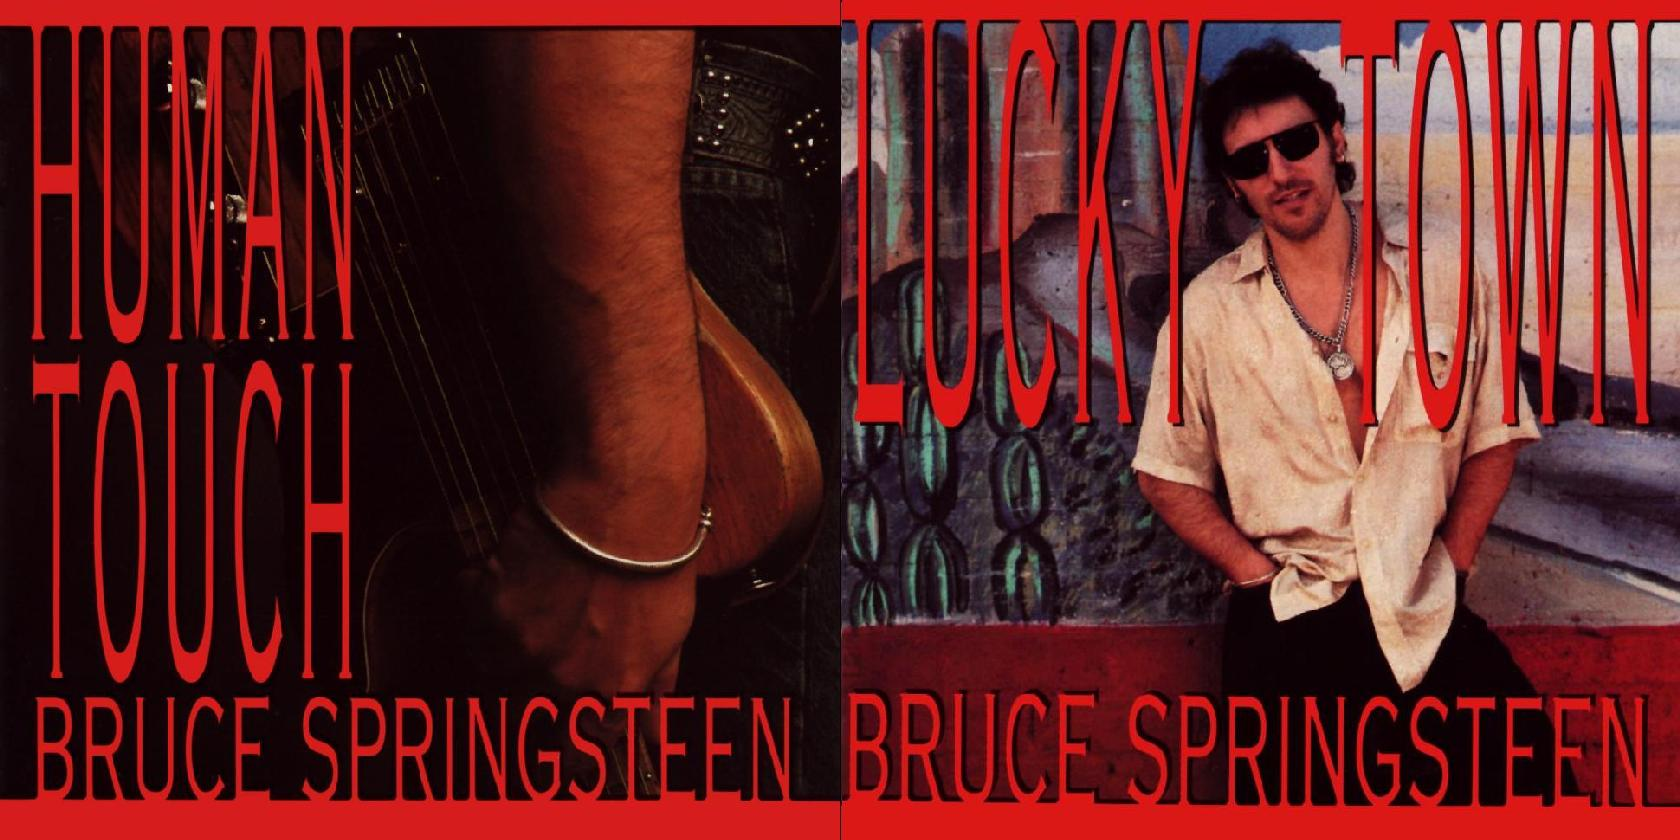 bruce springsteen human touch lucky town The 20 Most Regrettable Albums Ever